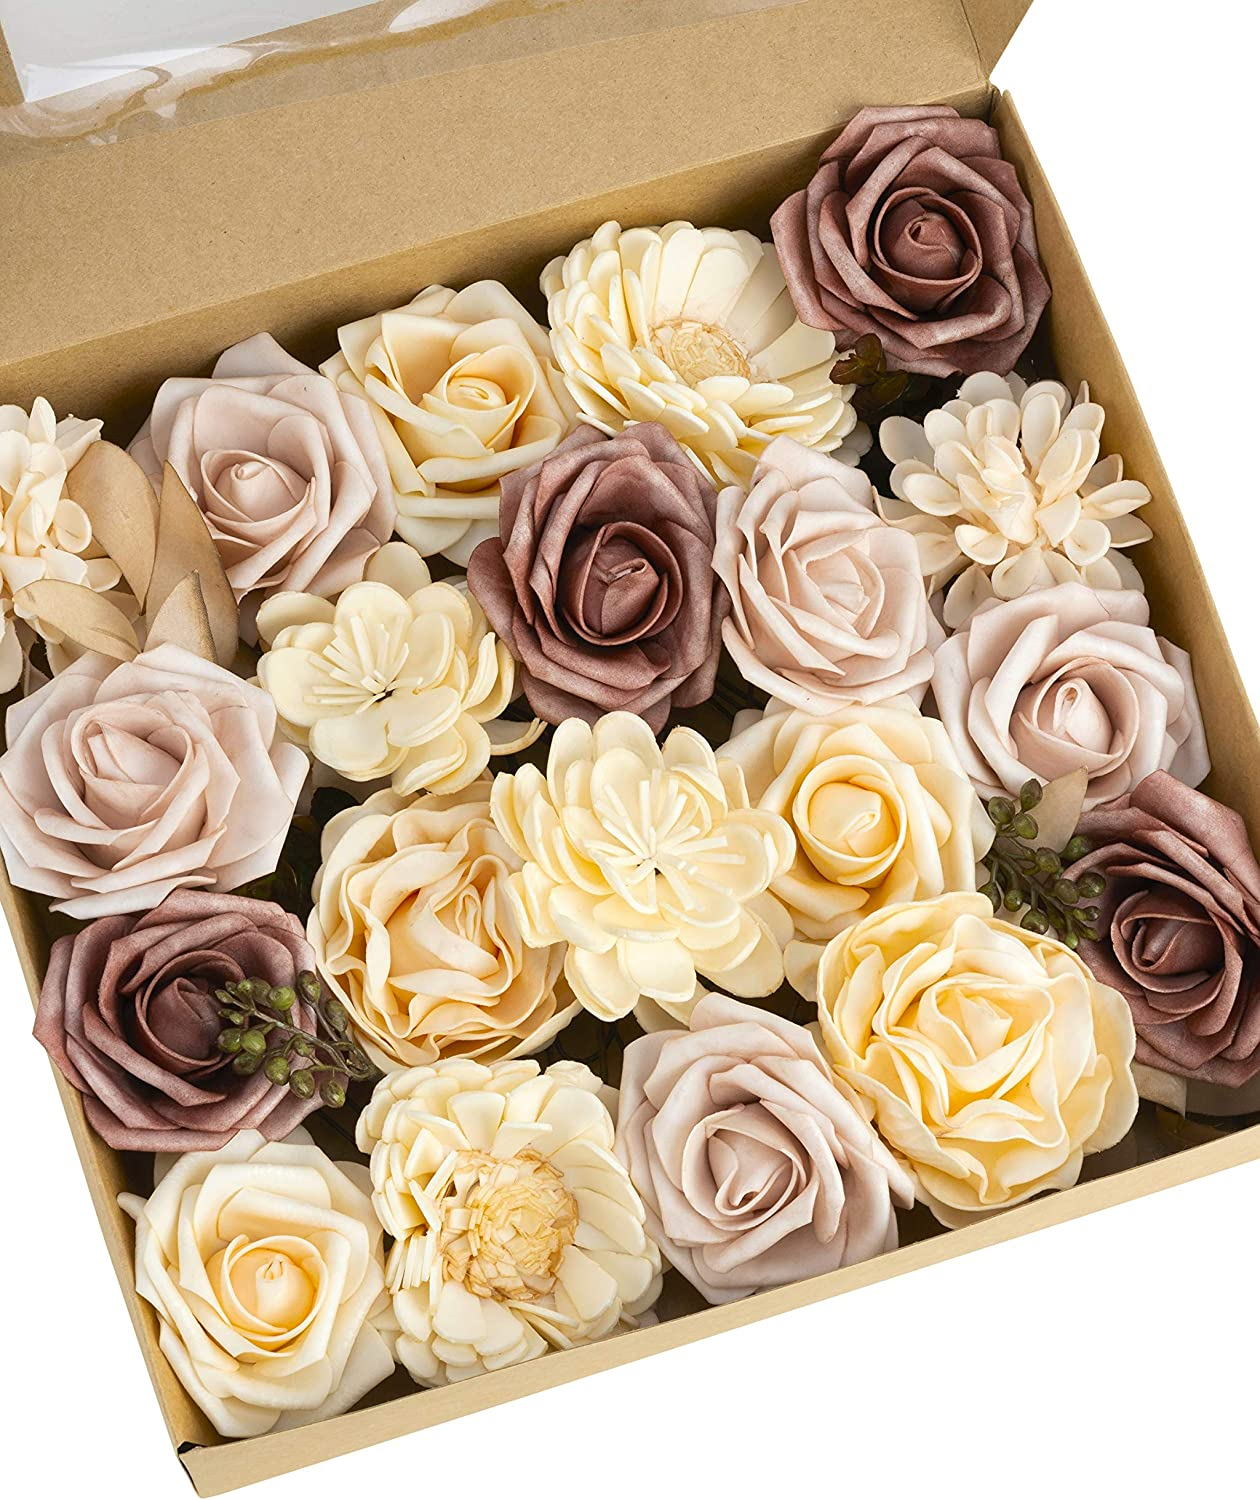 Dusty Rose Flowers - Artificial Flowers Combination for Vintage Wedding Decor Bouquets Centerpieces Home Decoration - Foam Flowers Roses Peonies with Stem for DIY Crafts - Handmade Floral Arrangement